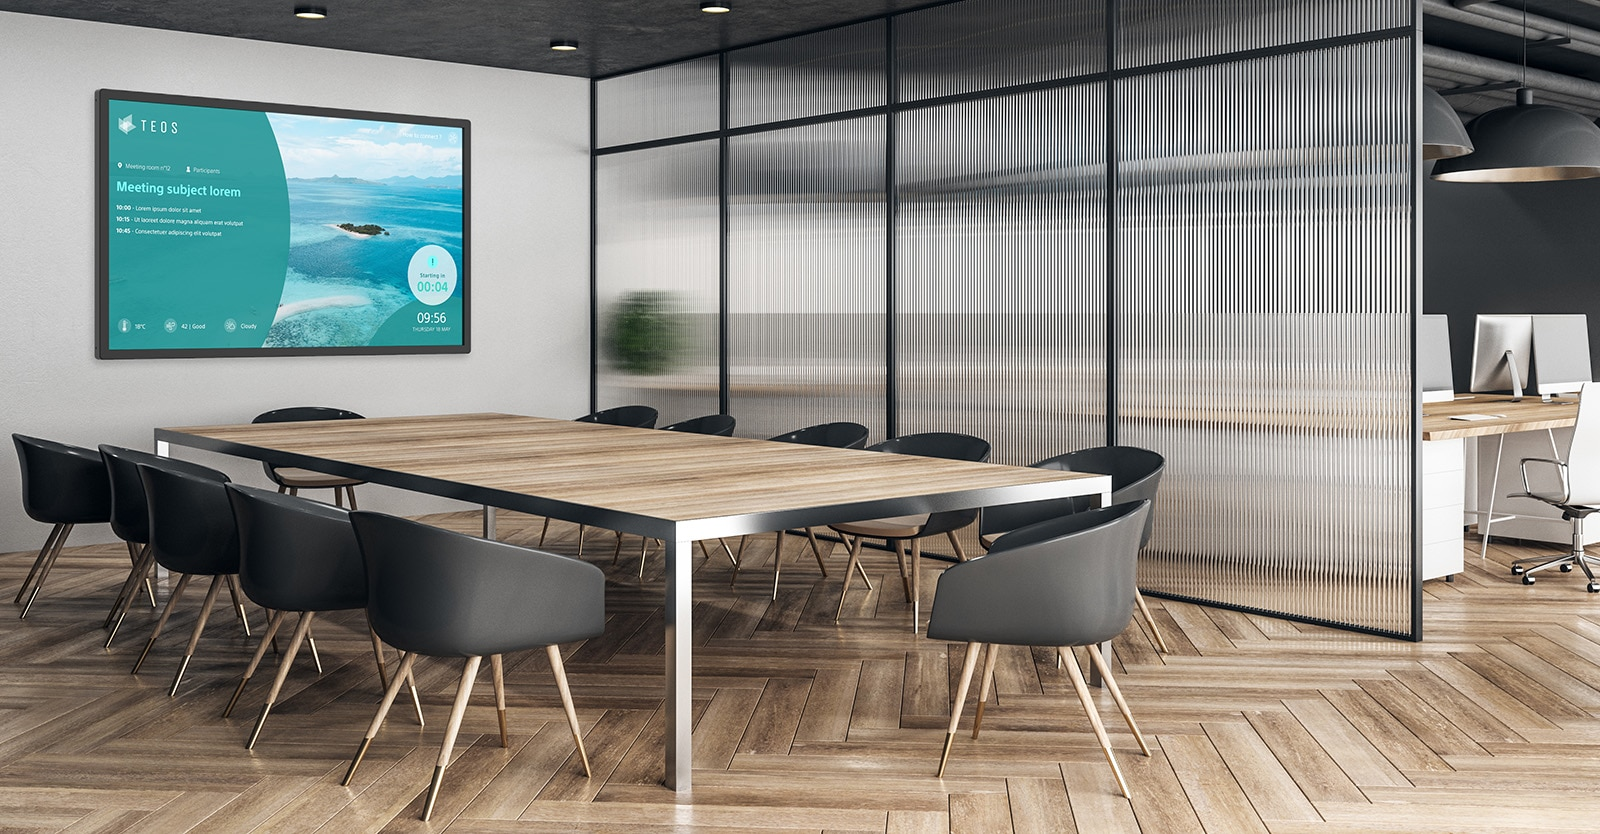 An empty corporate meeting room with a BRAVIA professional display attached to the wall